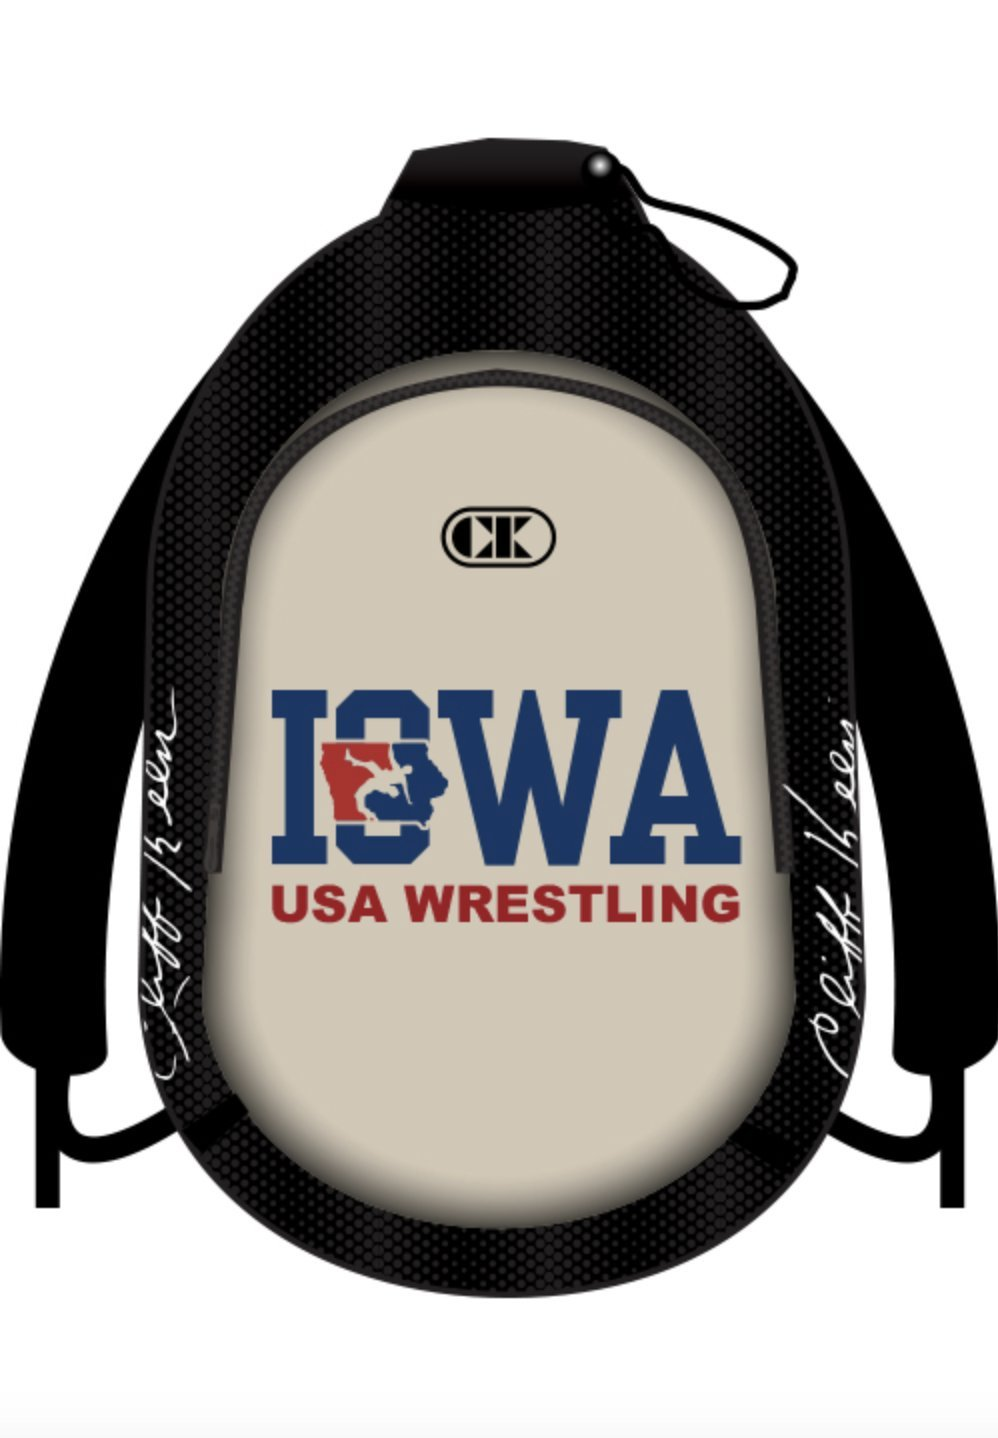 Cliff Keen Iowa Sublimated Backpack USA Wrestling Logo MBPIAU2